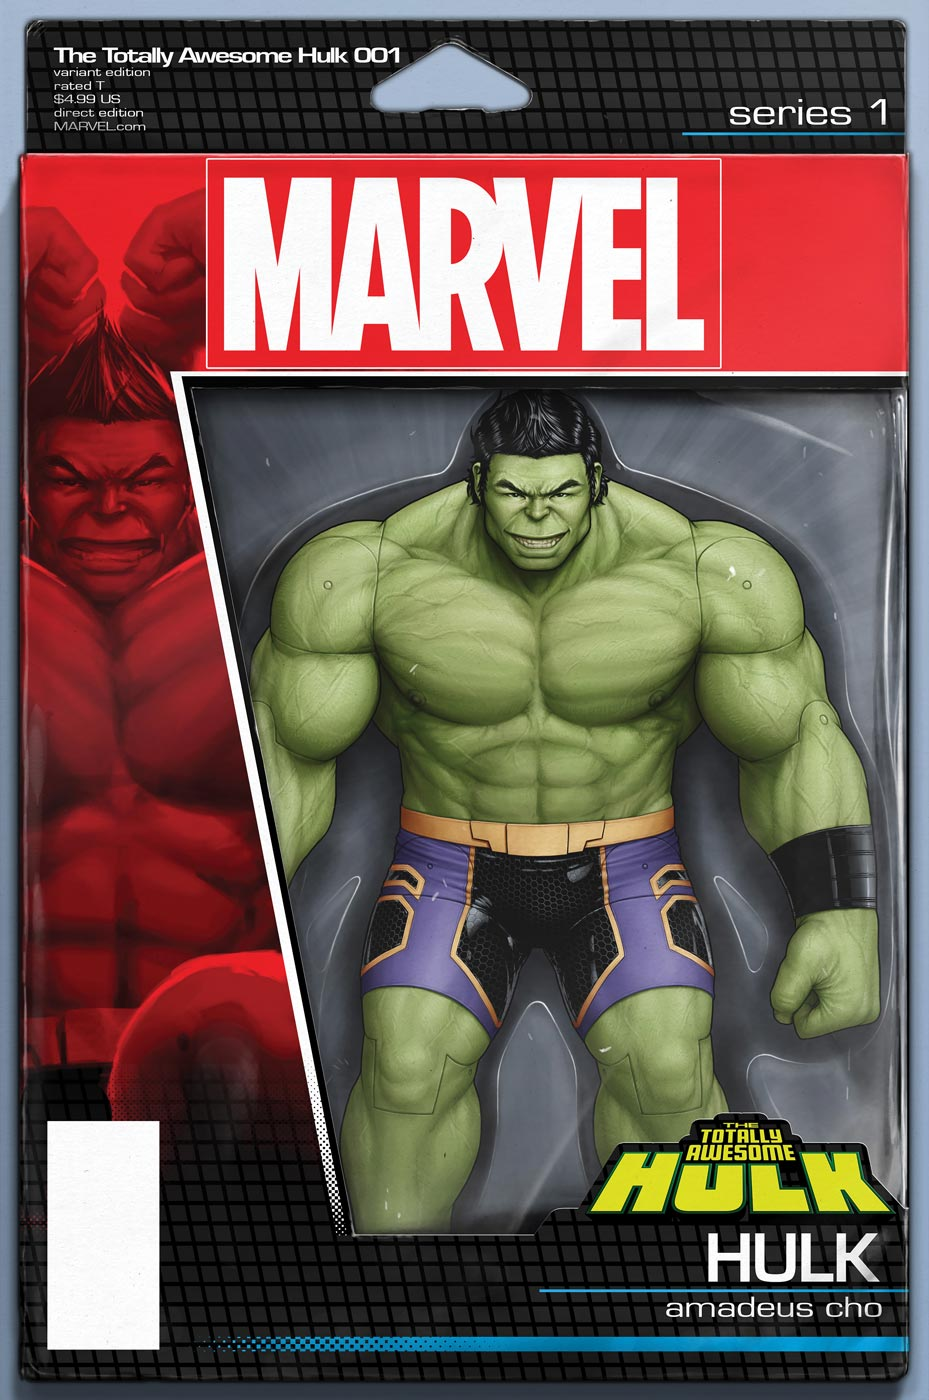 The_Totally_Awesome_Hulk_1_Christopher_Action_Figure_Variant